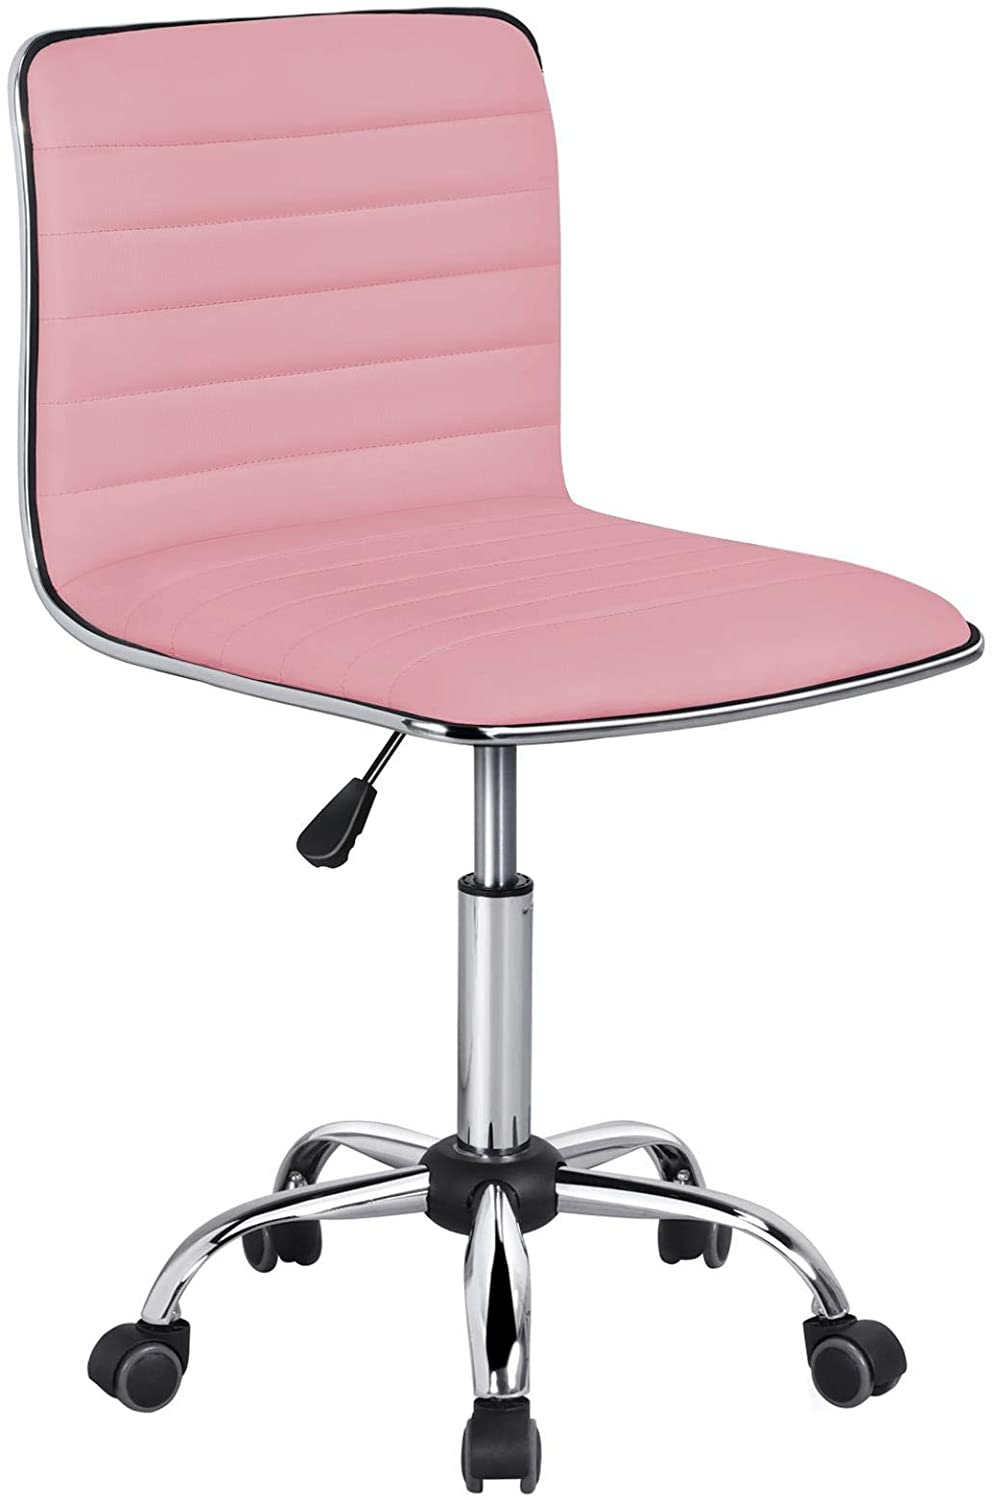 YAHEETECH Pink Low Back PU Leather Ribbed Armless Office Chair, Ergonomic Swivel Task Chair with Wheels for Women